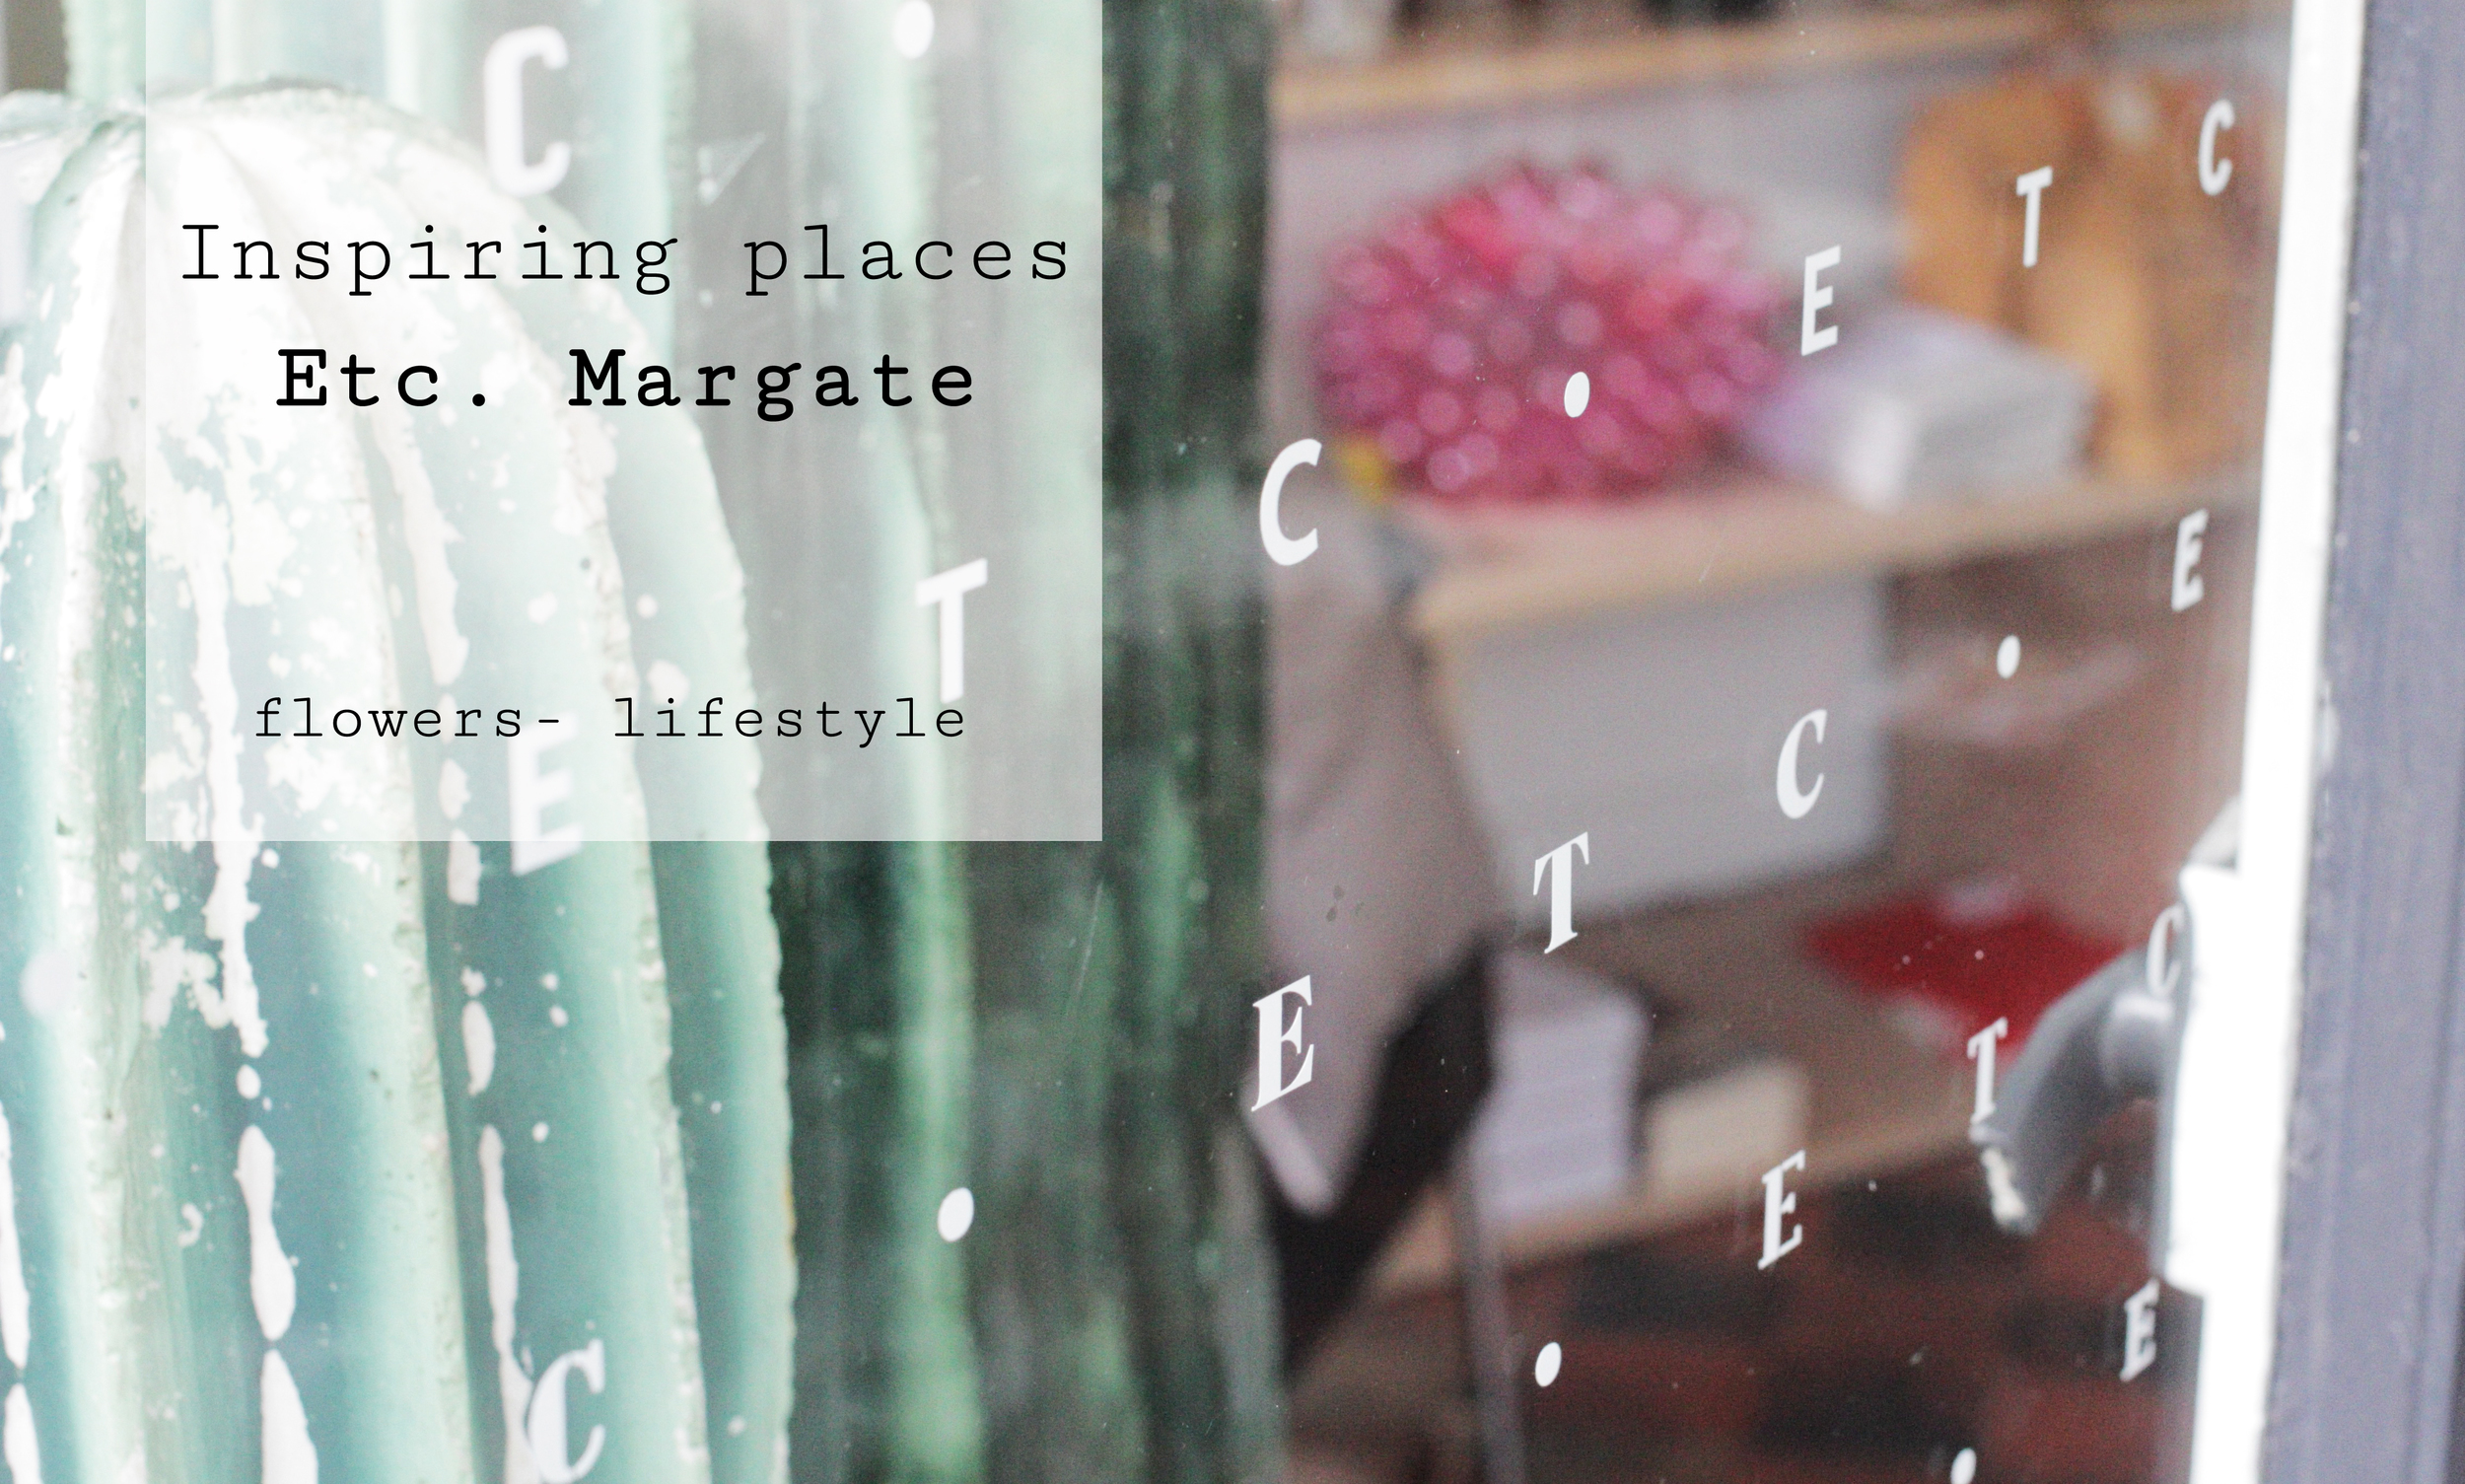 great shops Etc. in Margate, inspiration post www.hestershandmadehome.com